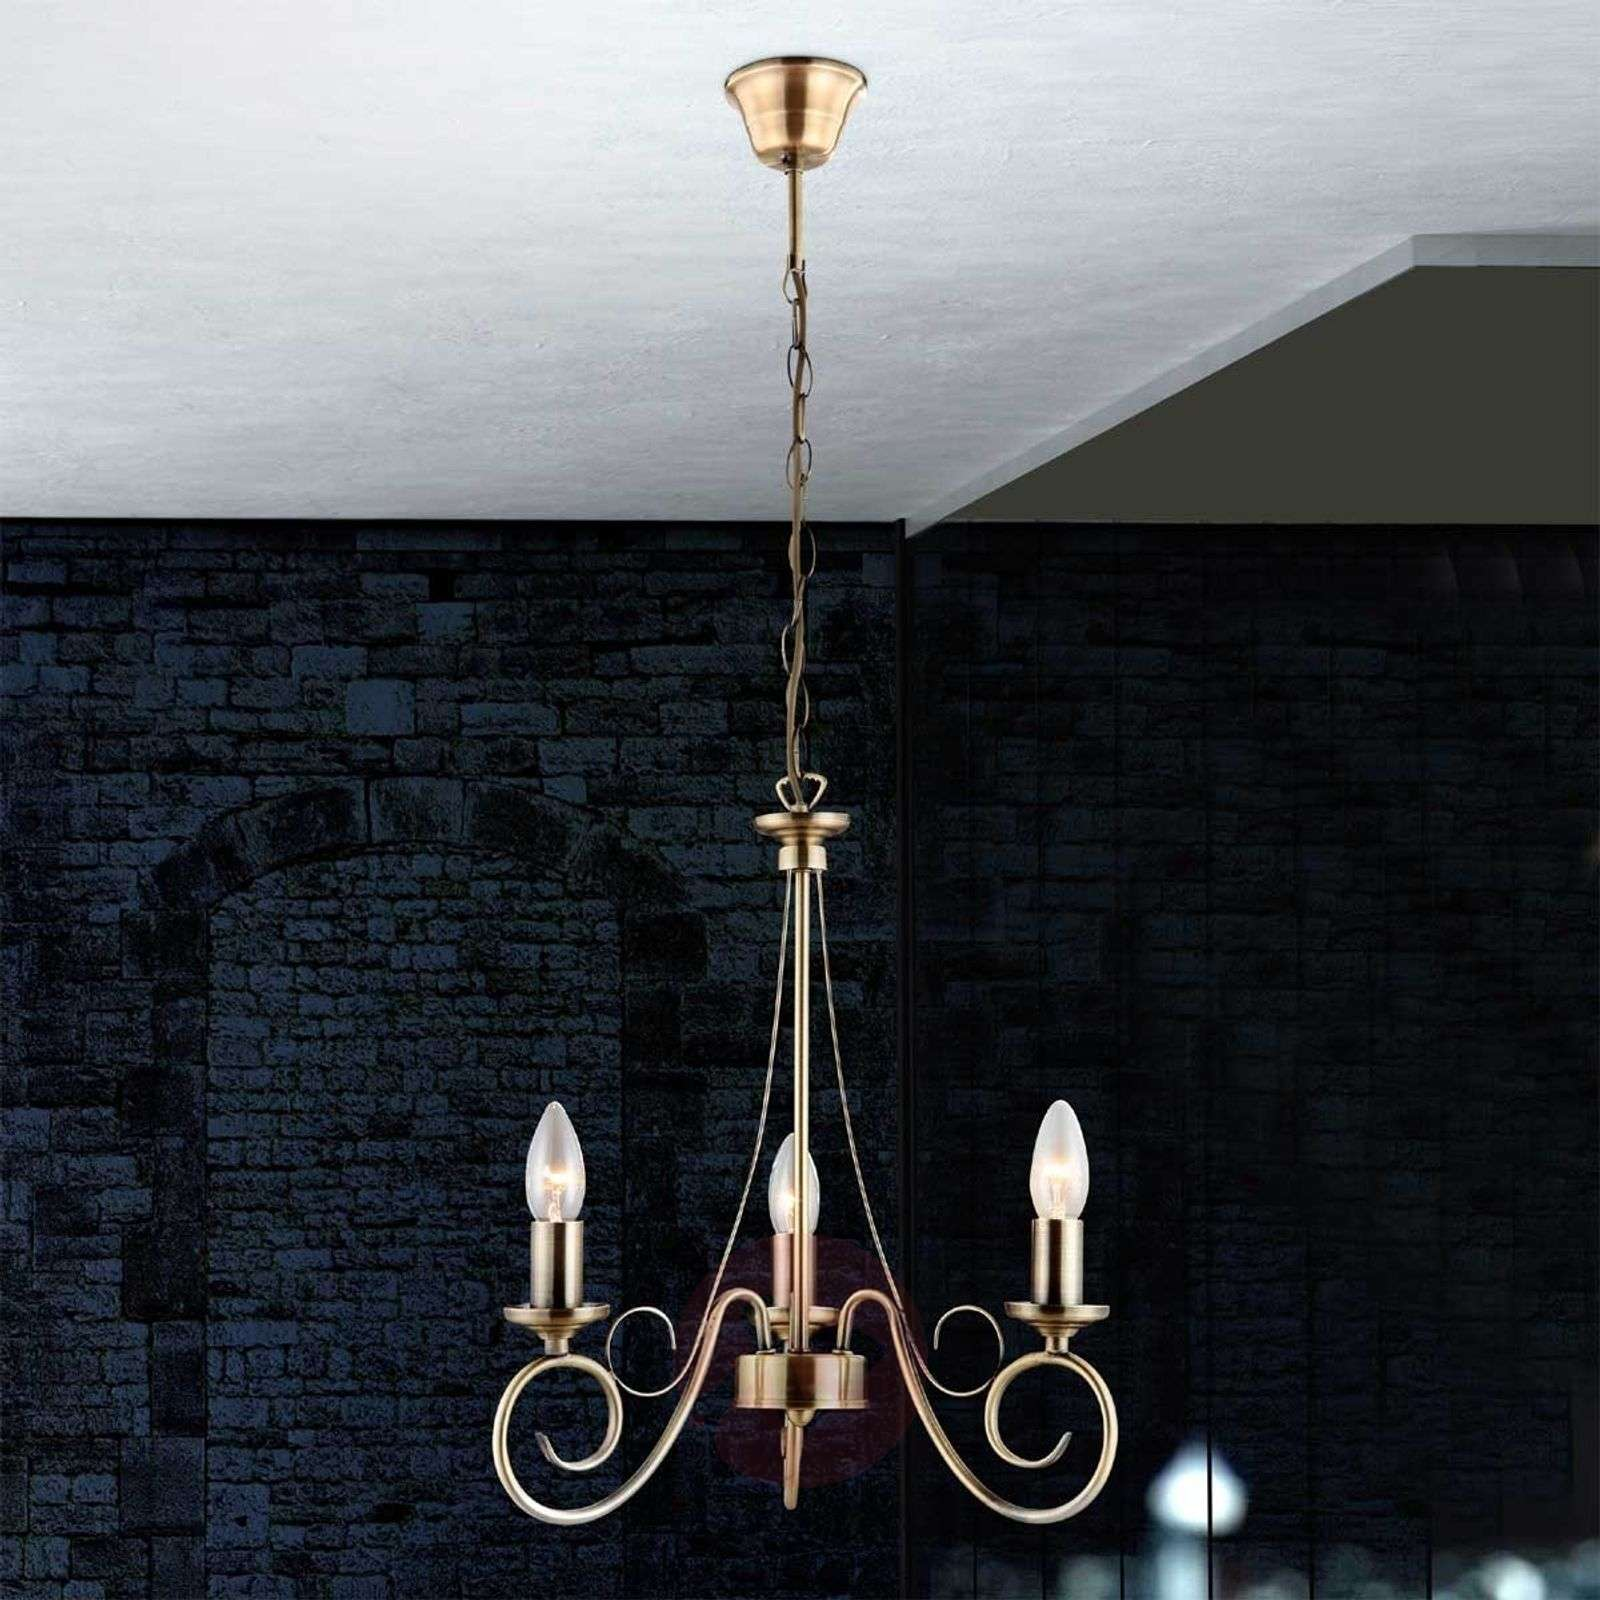 suspension truncatus 3 lampes en laiton ancien. Black Bedroom Furniture Sets. Home Design Ideas